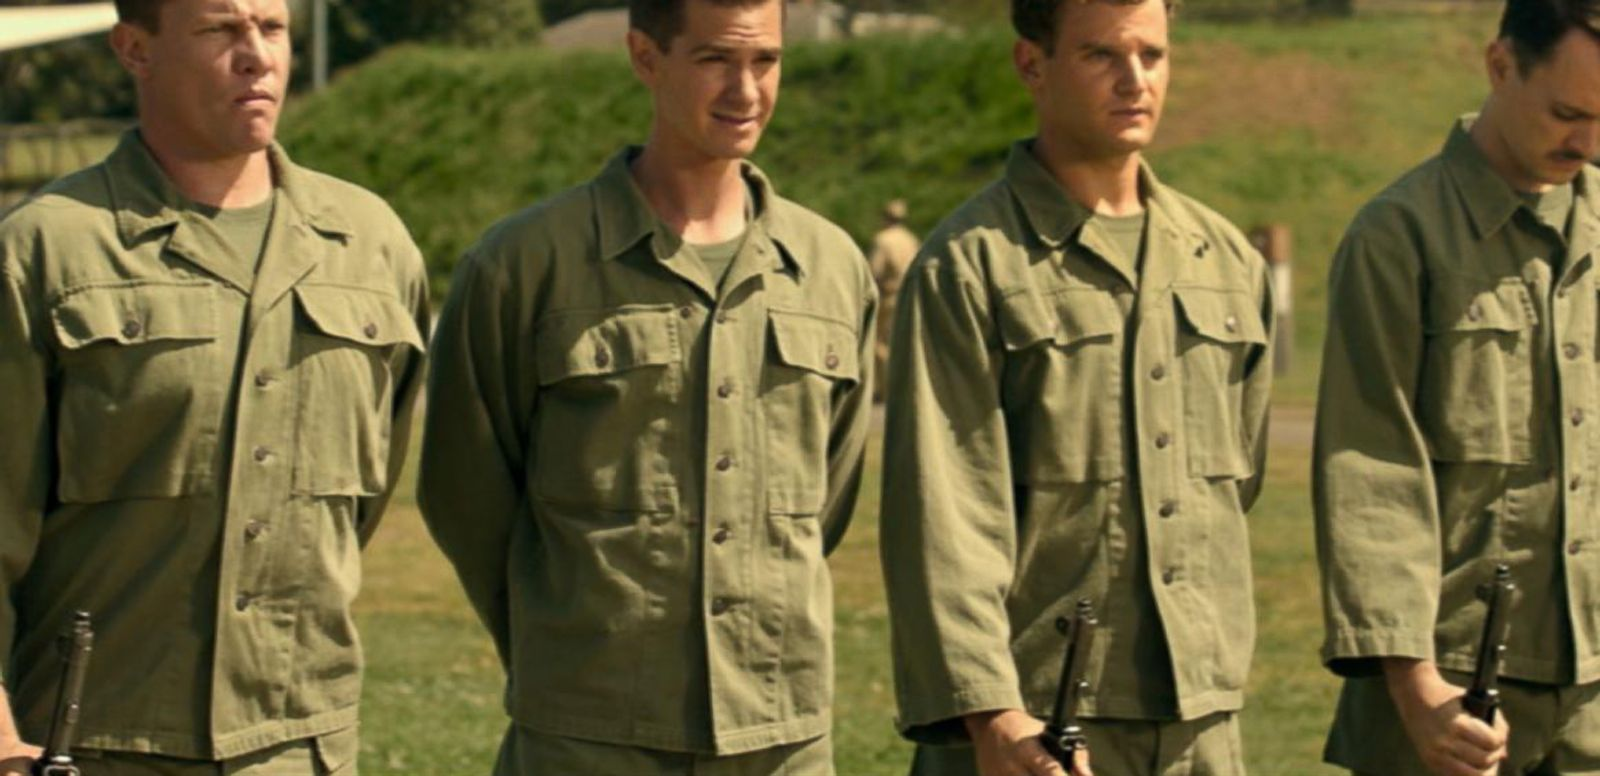 VIDEO: 'Hacksaw Ridge' Trailer Debuts Exclusively on 'GMA'